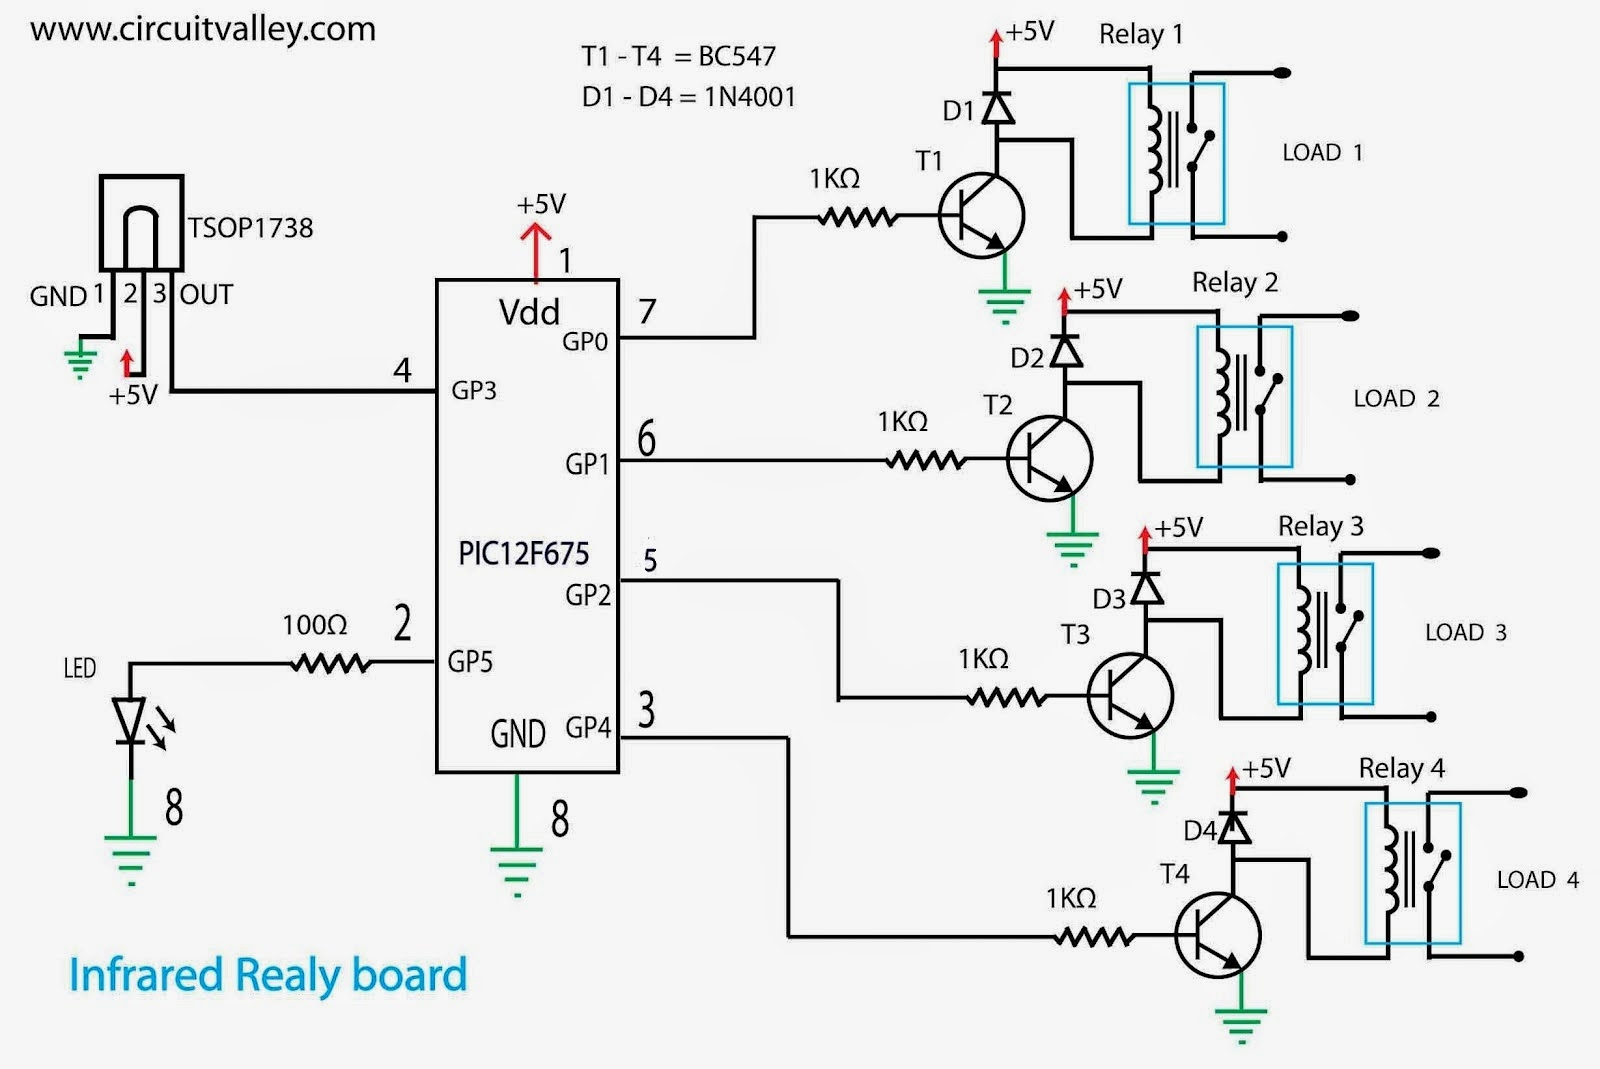 hatco wiring diagram bo 1344  infrared remote control receiver circuit wiring diagram hatco toaster wiring diagram infrared remote control receiver